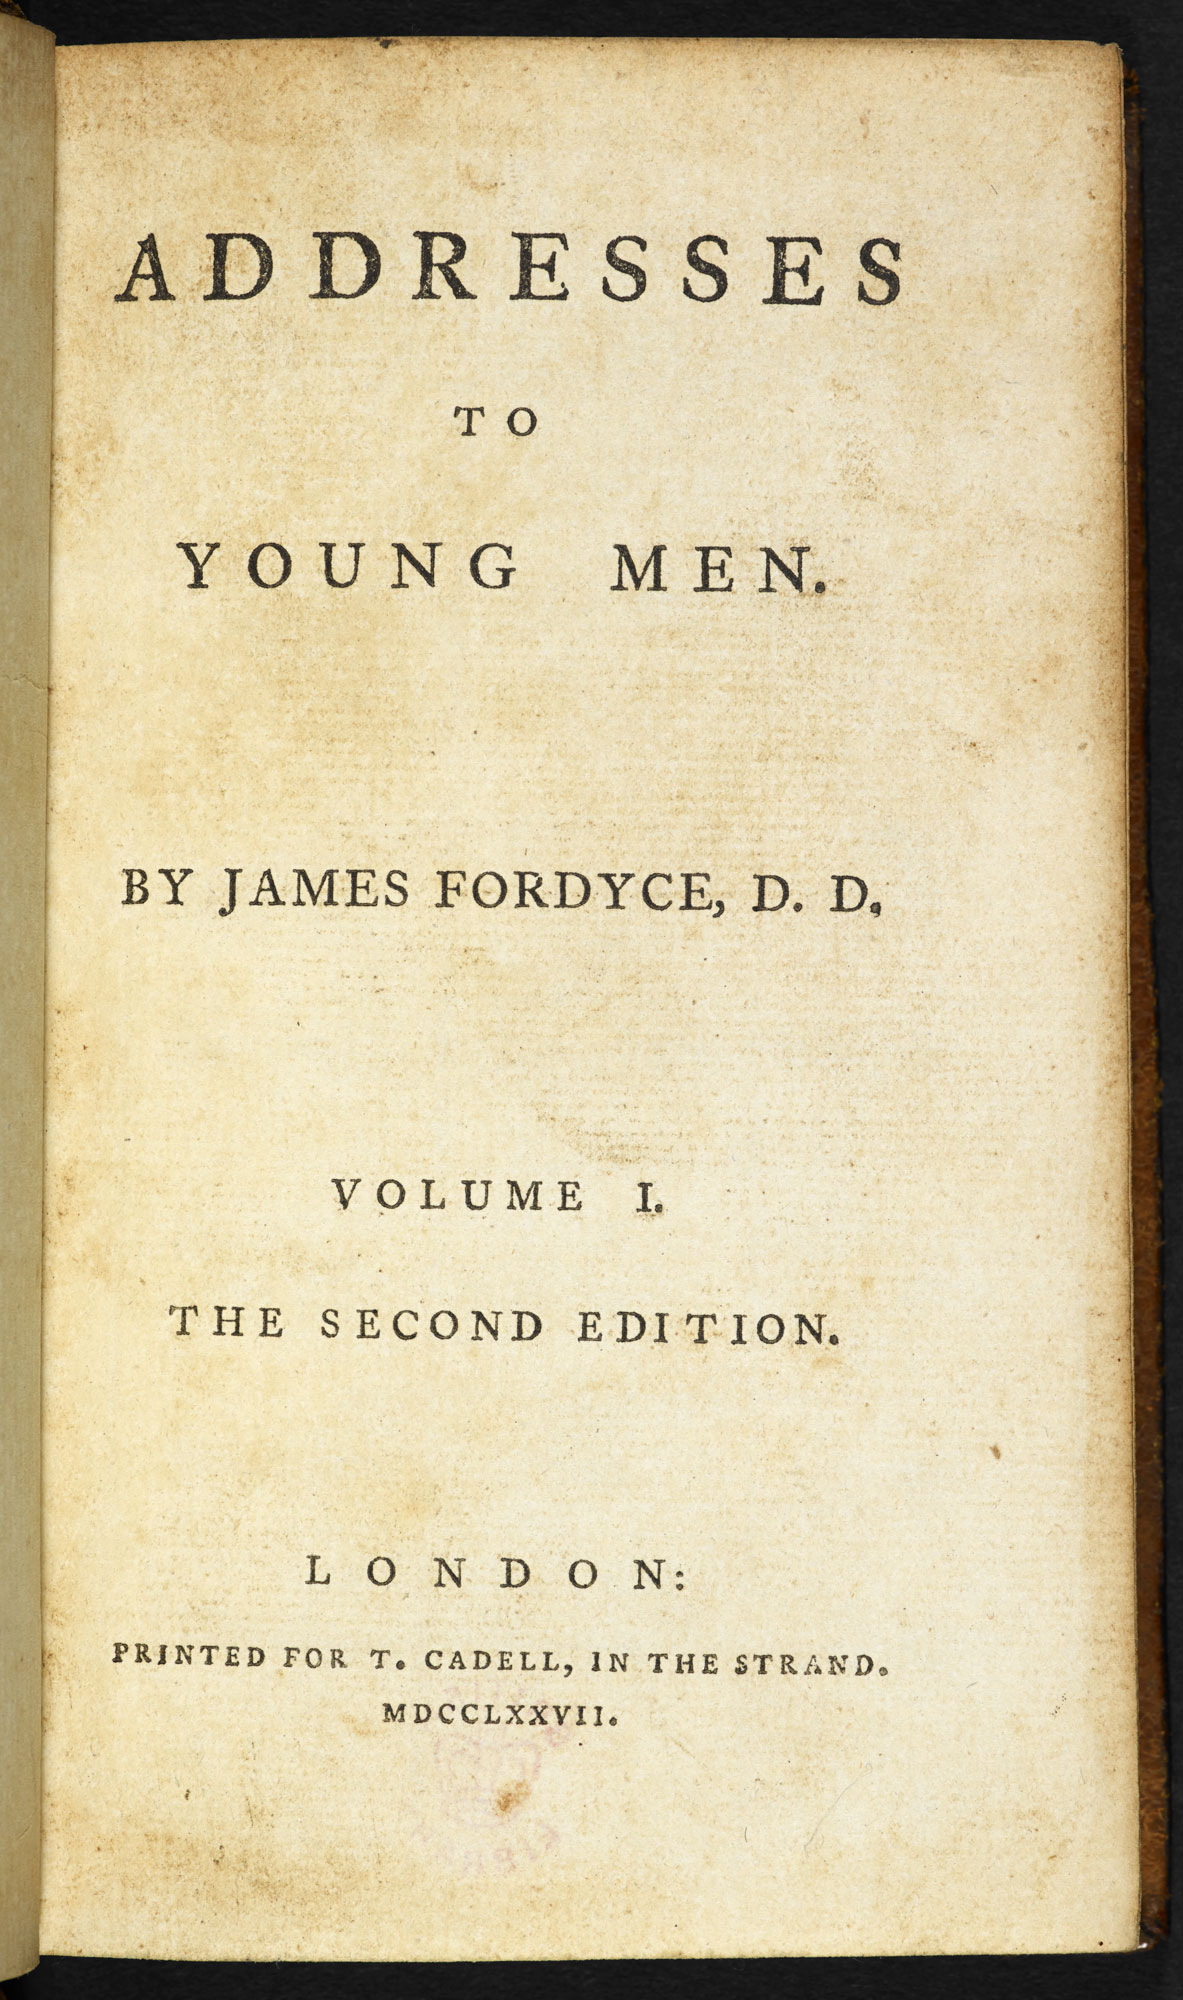 Addresses to Young Men [page: vol. I title page]